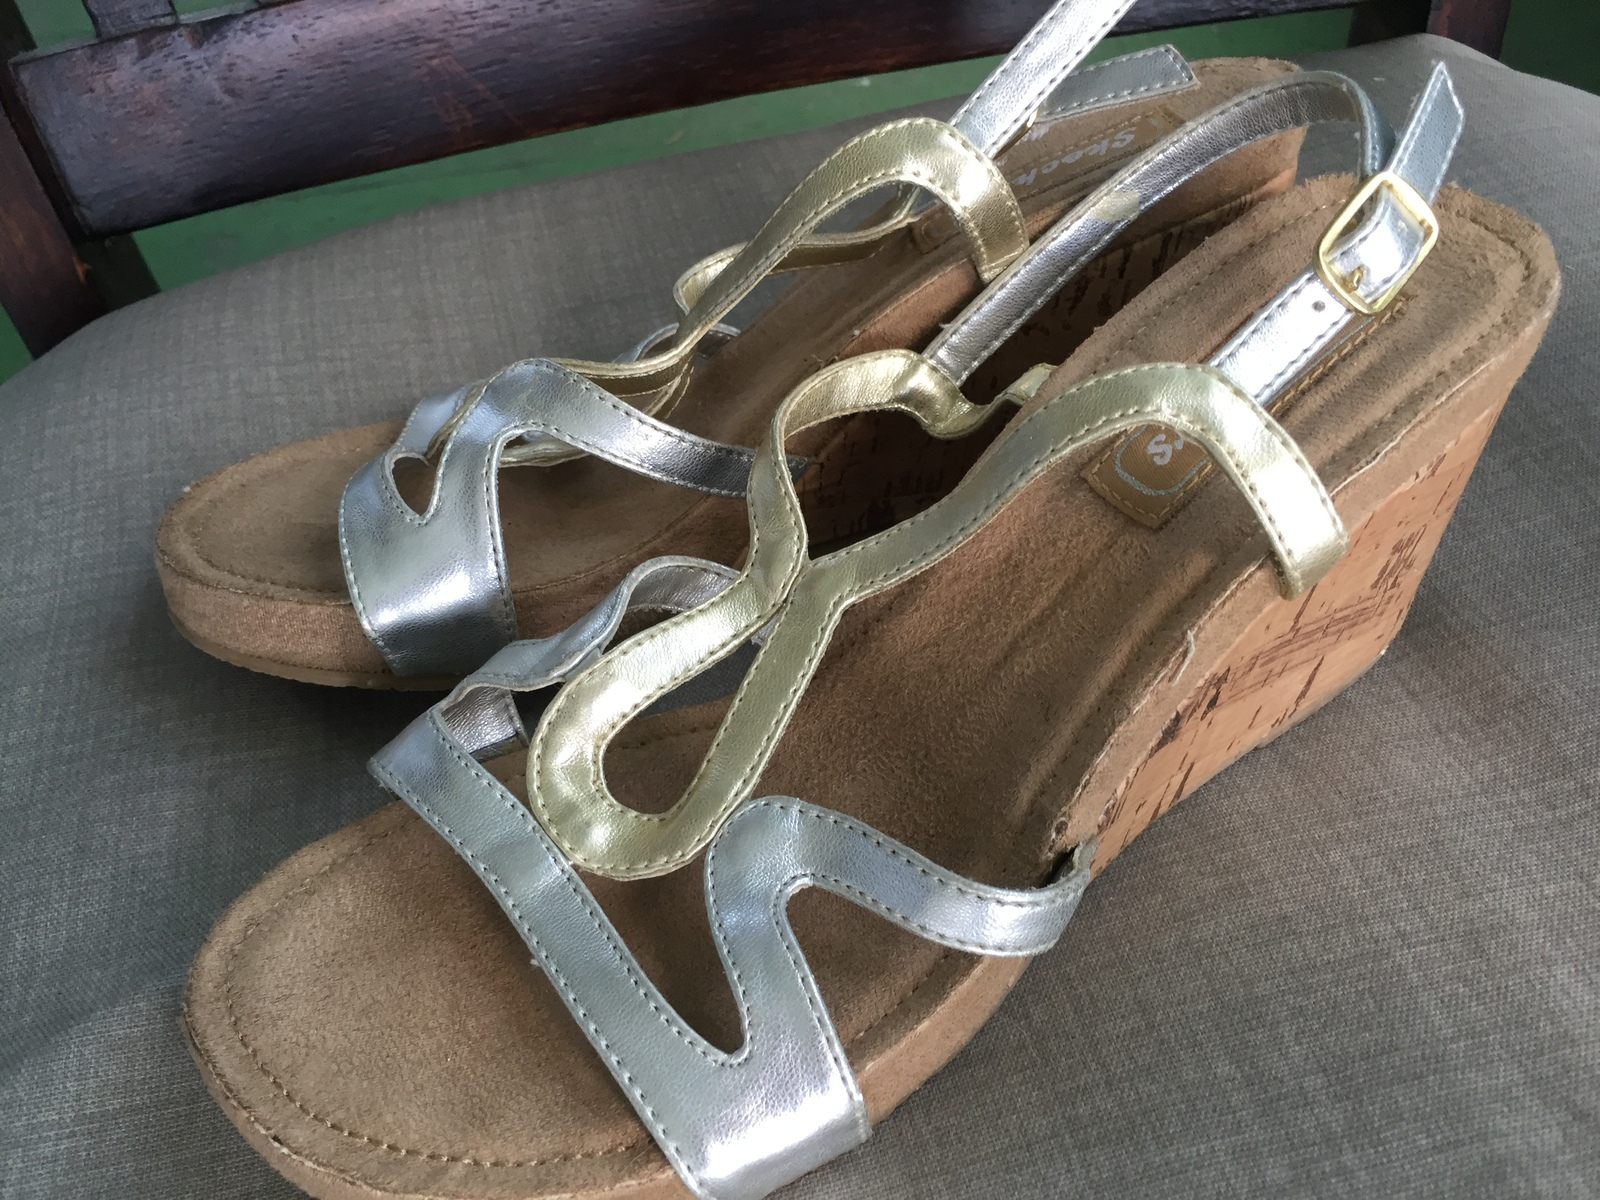 REDUCED! SKECHERS Women's metallic wedge sandals 5.5-6 US